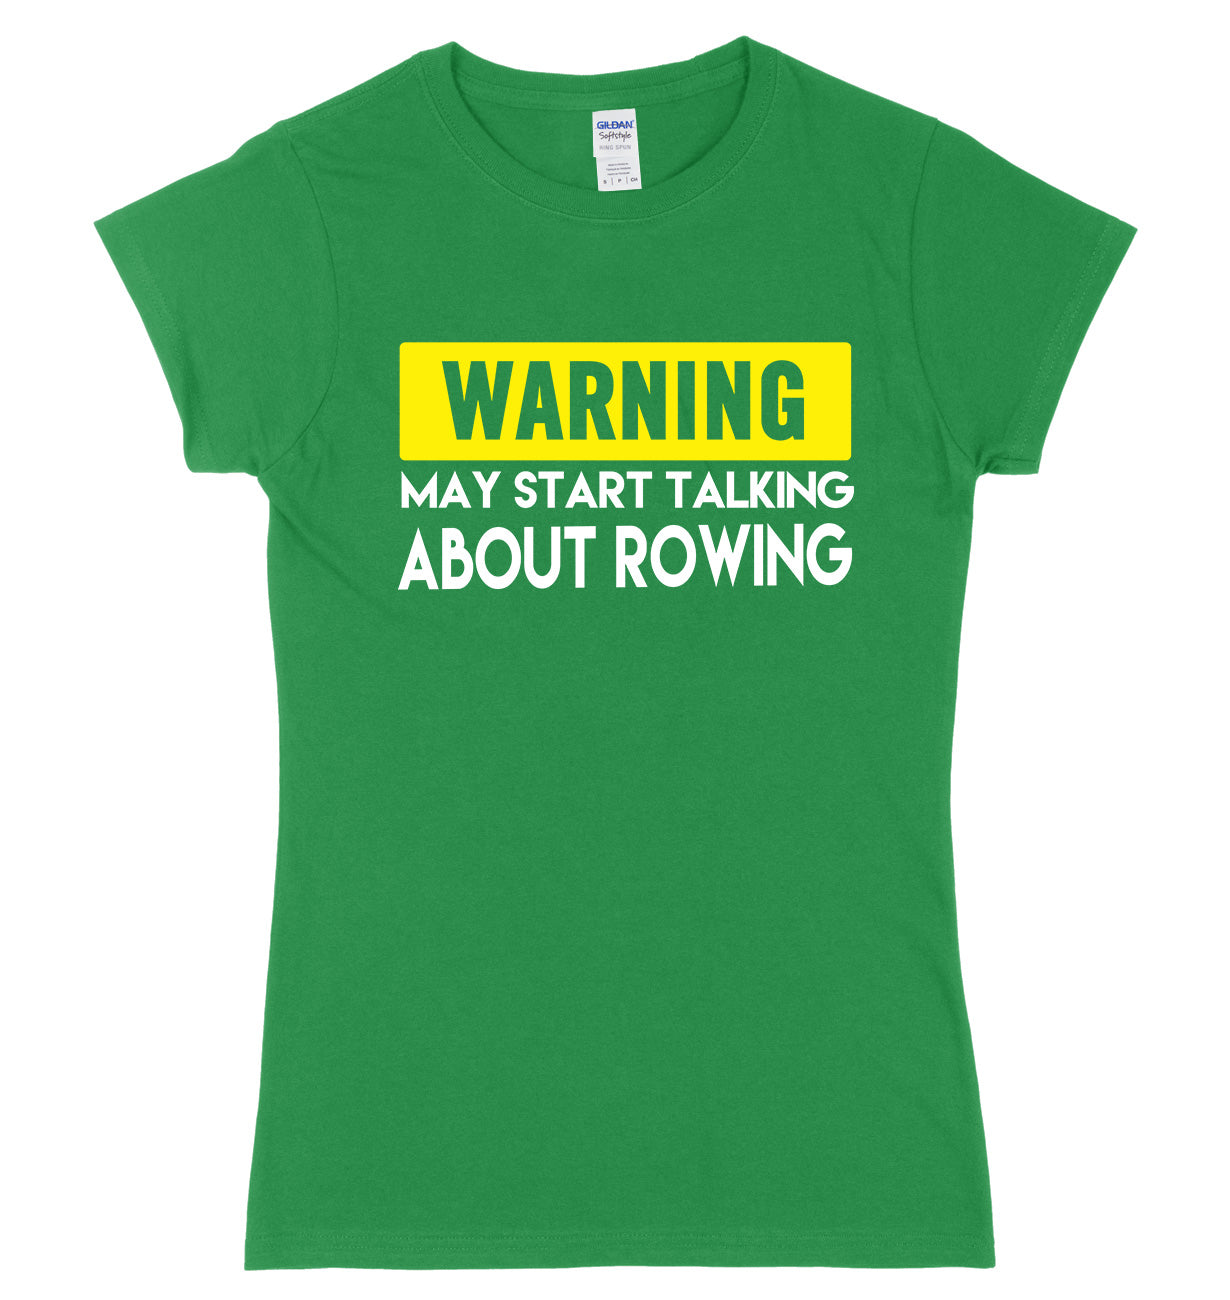 WARNING MAY START TALKING ABOUT ROWING FUNNY WOMENS LADIES SLIM FIT  T-SHIRT